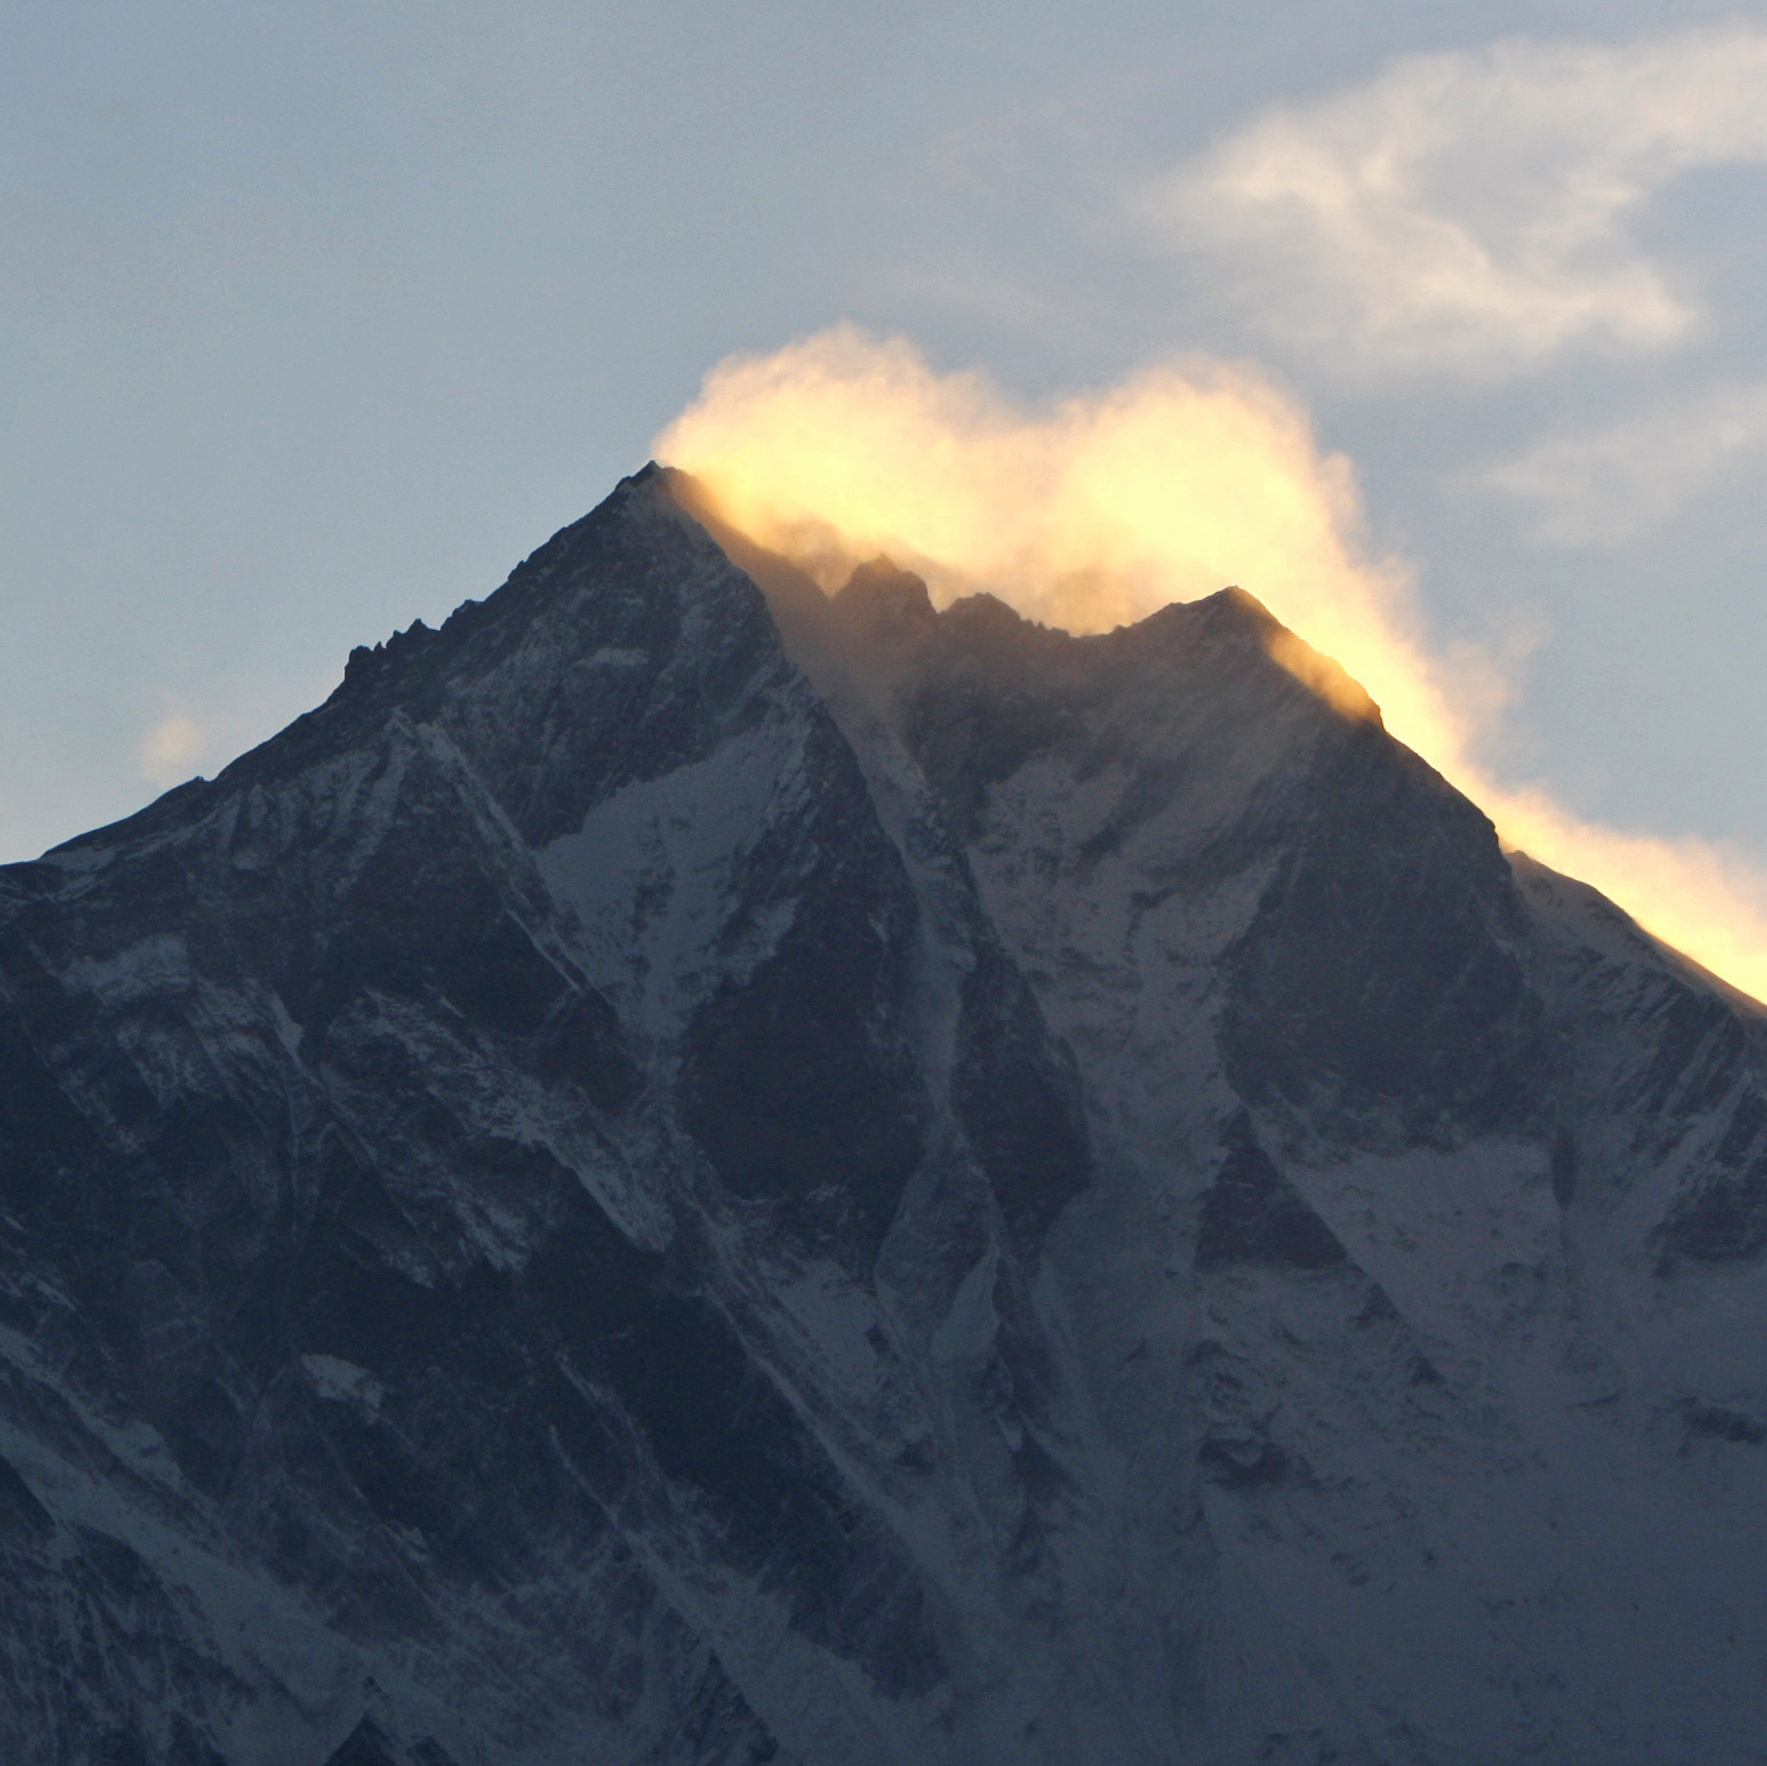 Clouds hover above the world's highest peak Mount Everest (left) and Mount Lhotse in Nepal.